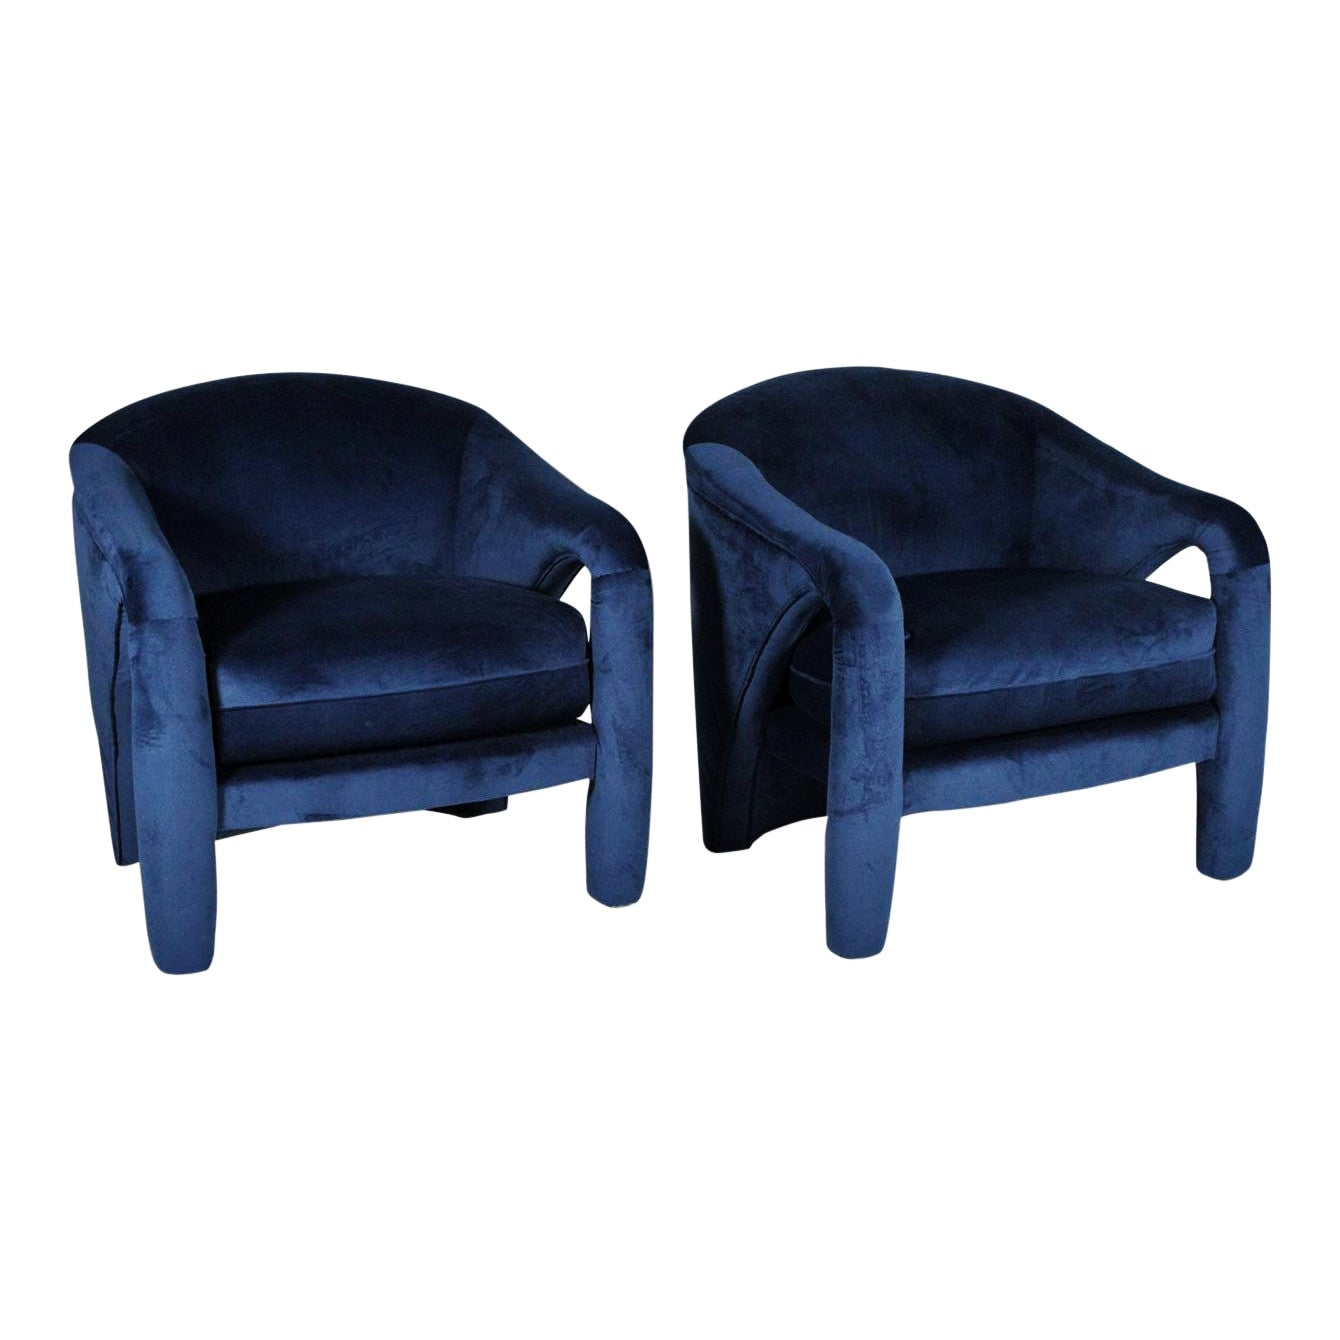 Pair of Blue Velvet Sculptural Lounge Chairs by Weiman